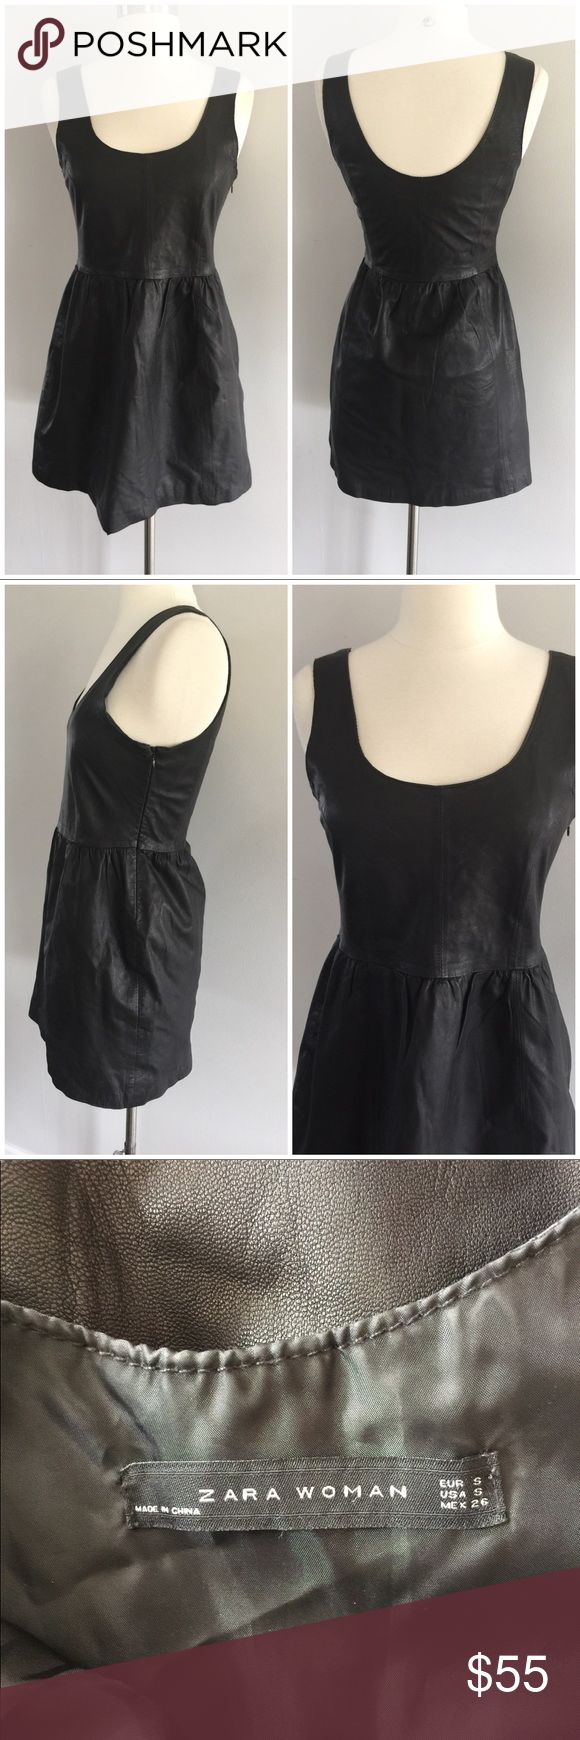 Zara woman leather black dress Sz small Cool but edgy babydoll fit leather dress Sleeveless Outershell: 100% lambs leather Lining: 100% polyester  Zips on the side  Condition: Great pre-owned condition   Comes from a smoke free home.  Stock #: JG166 Zara Dresses Mini